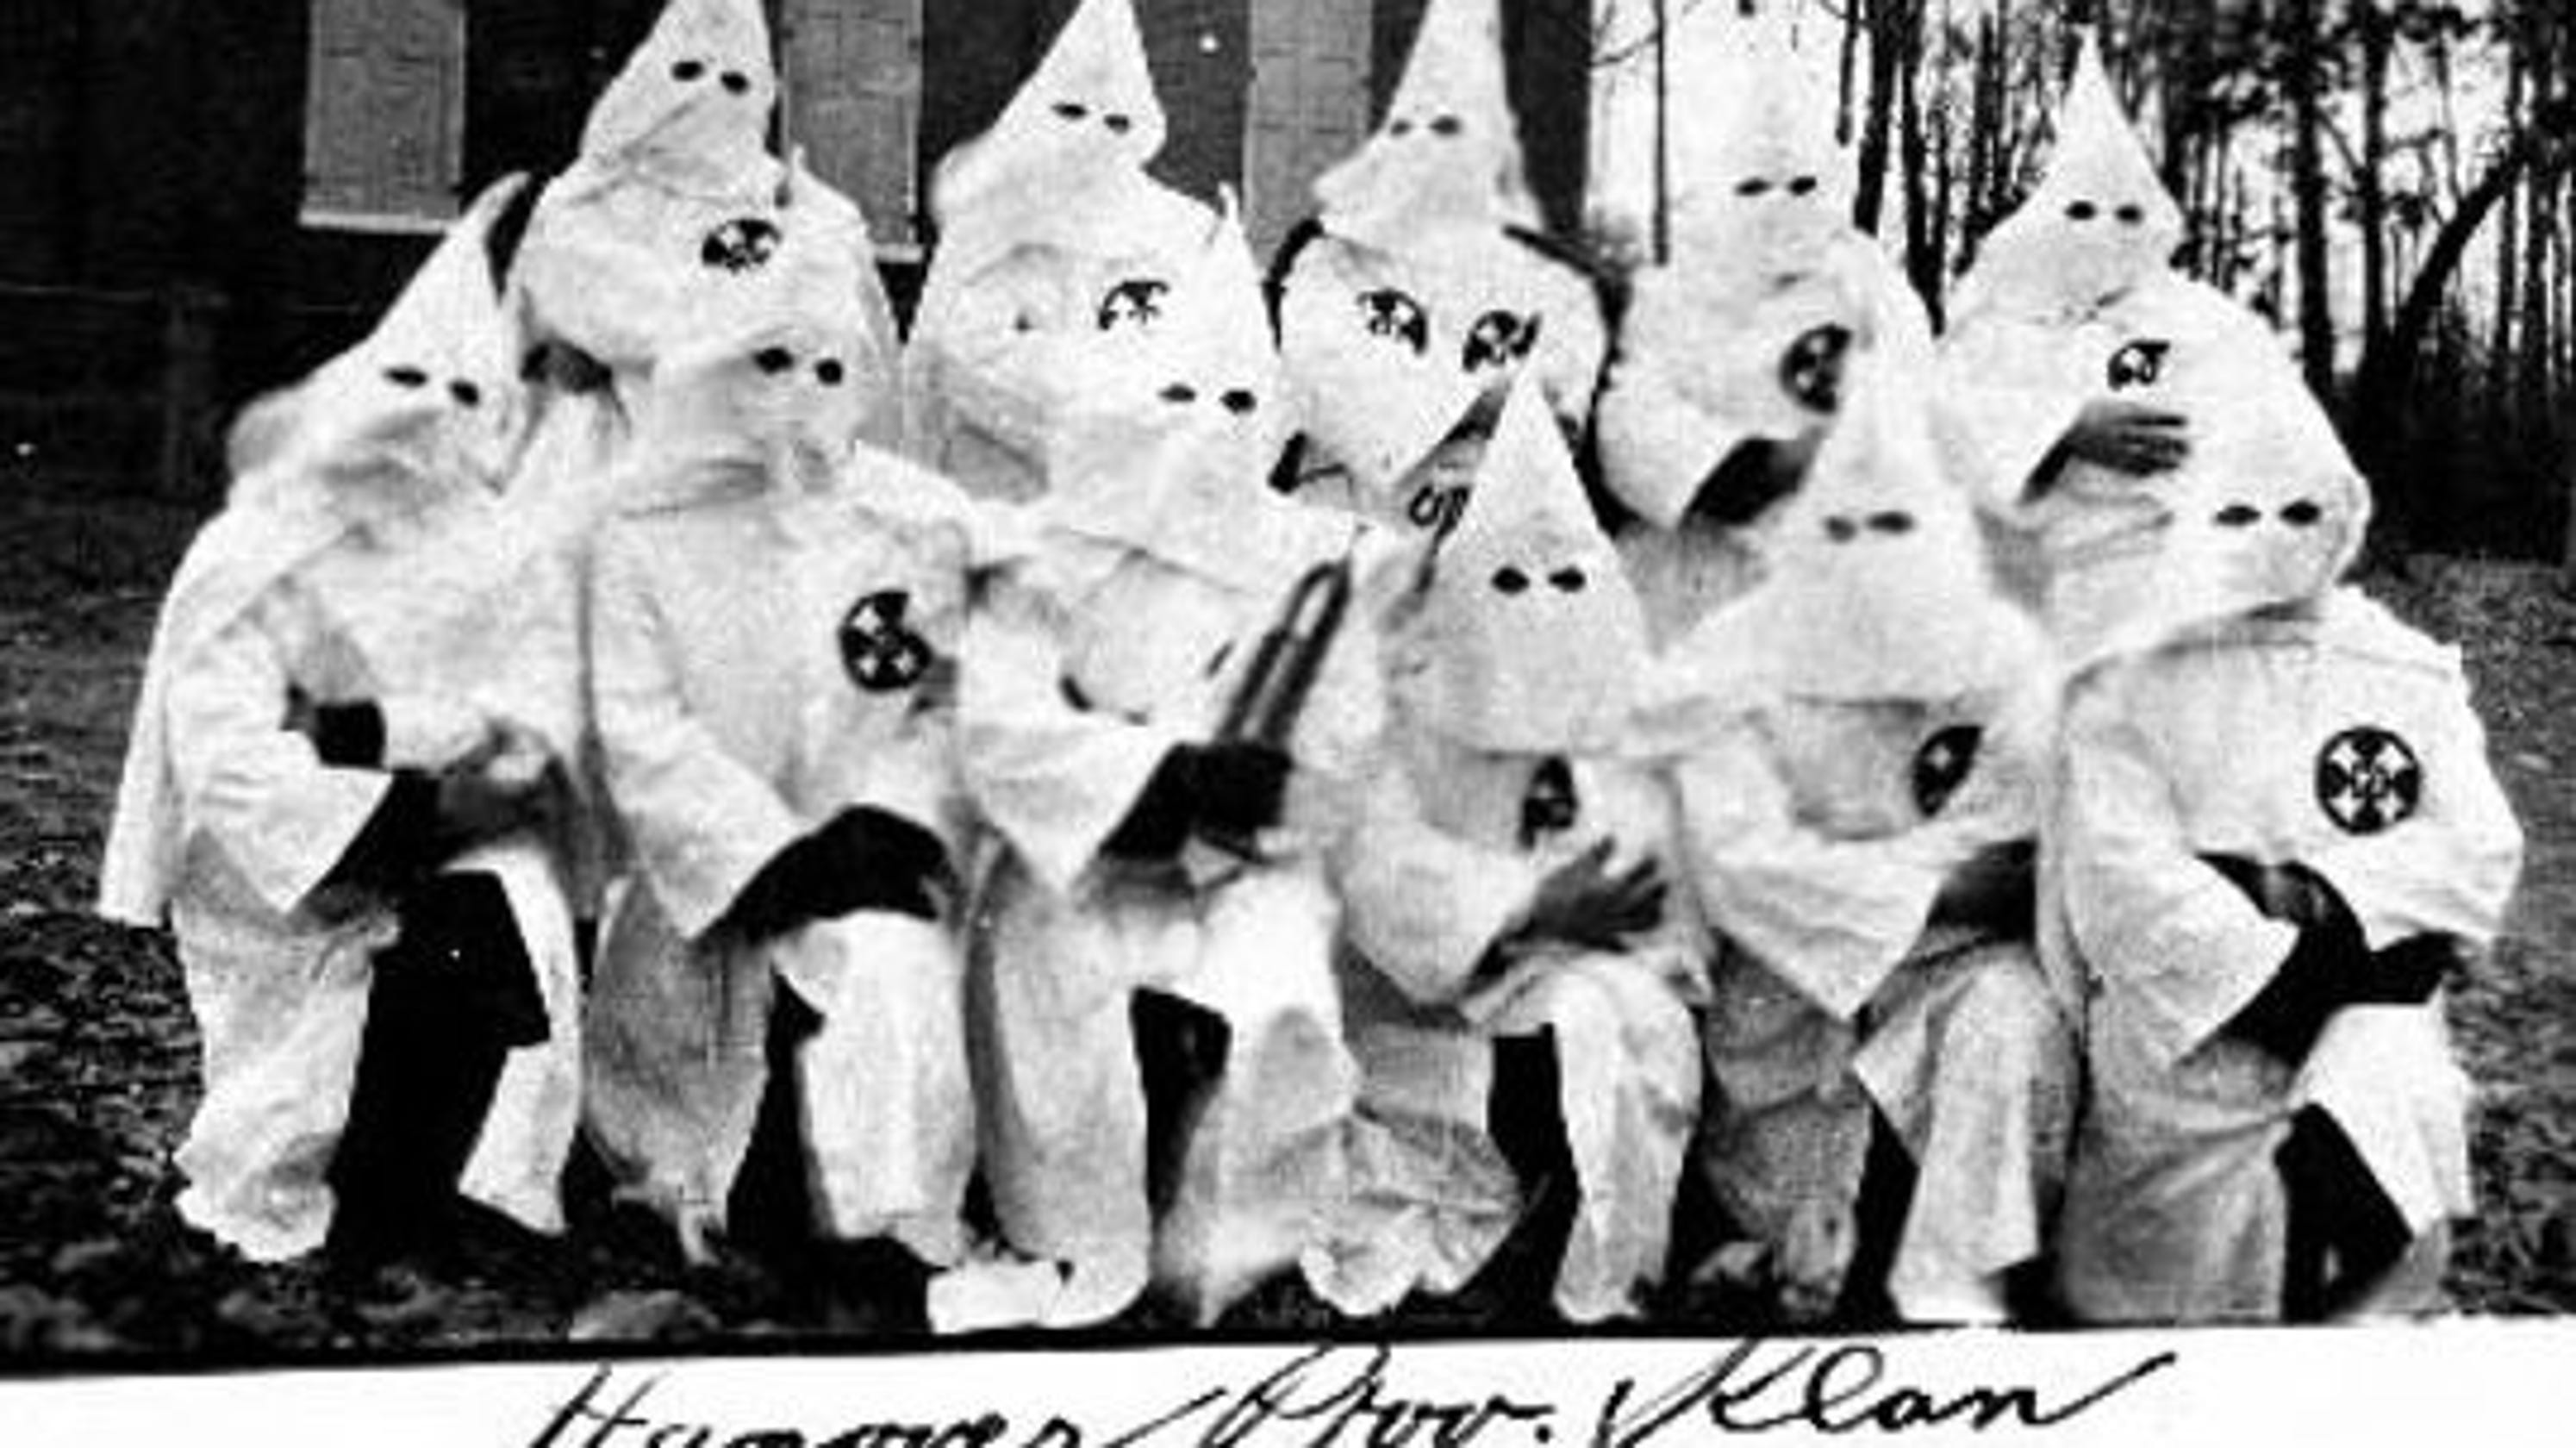 KKK lit crosses on the lawns of Red Lion cigar makers who hired blacks